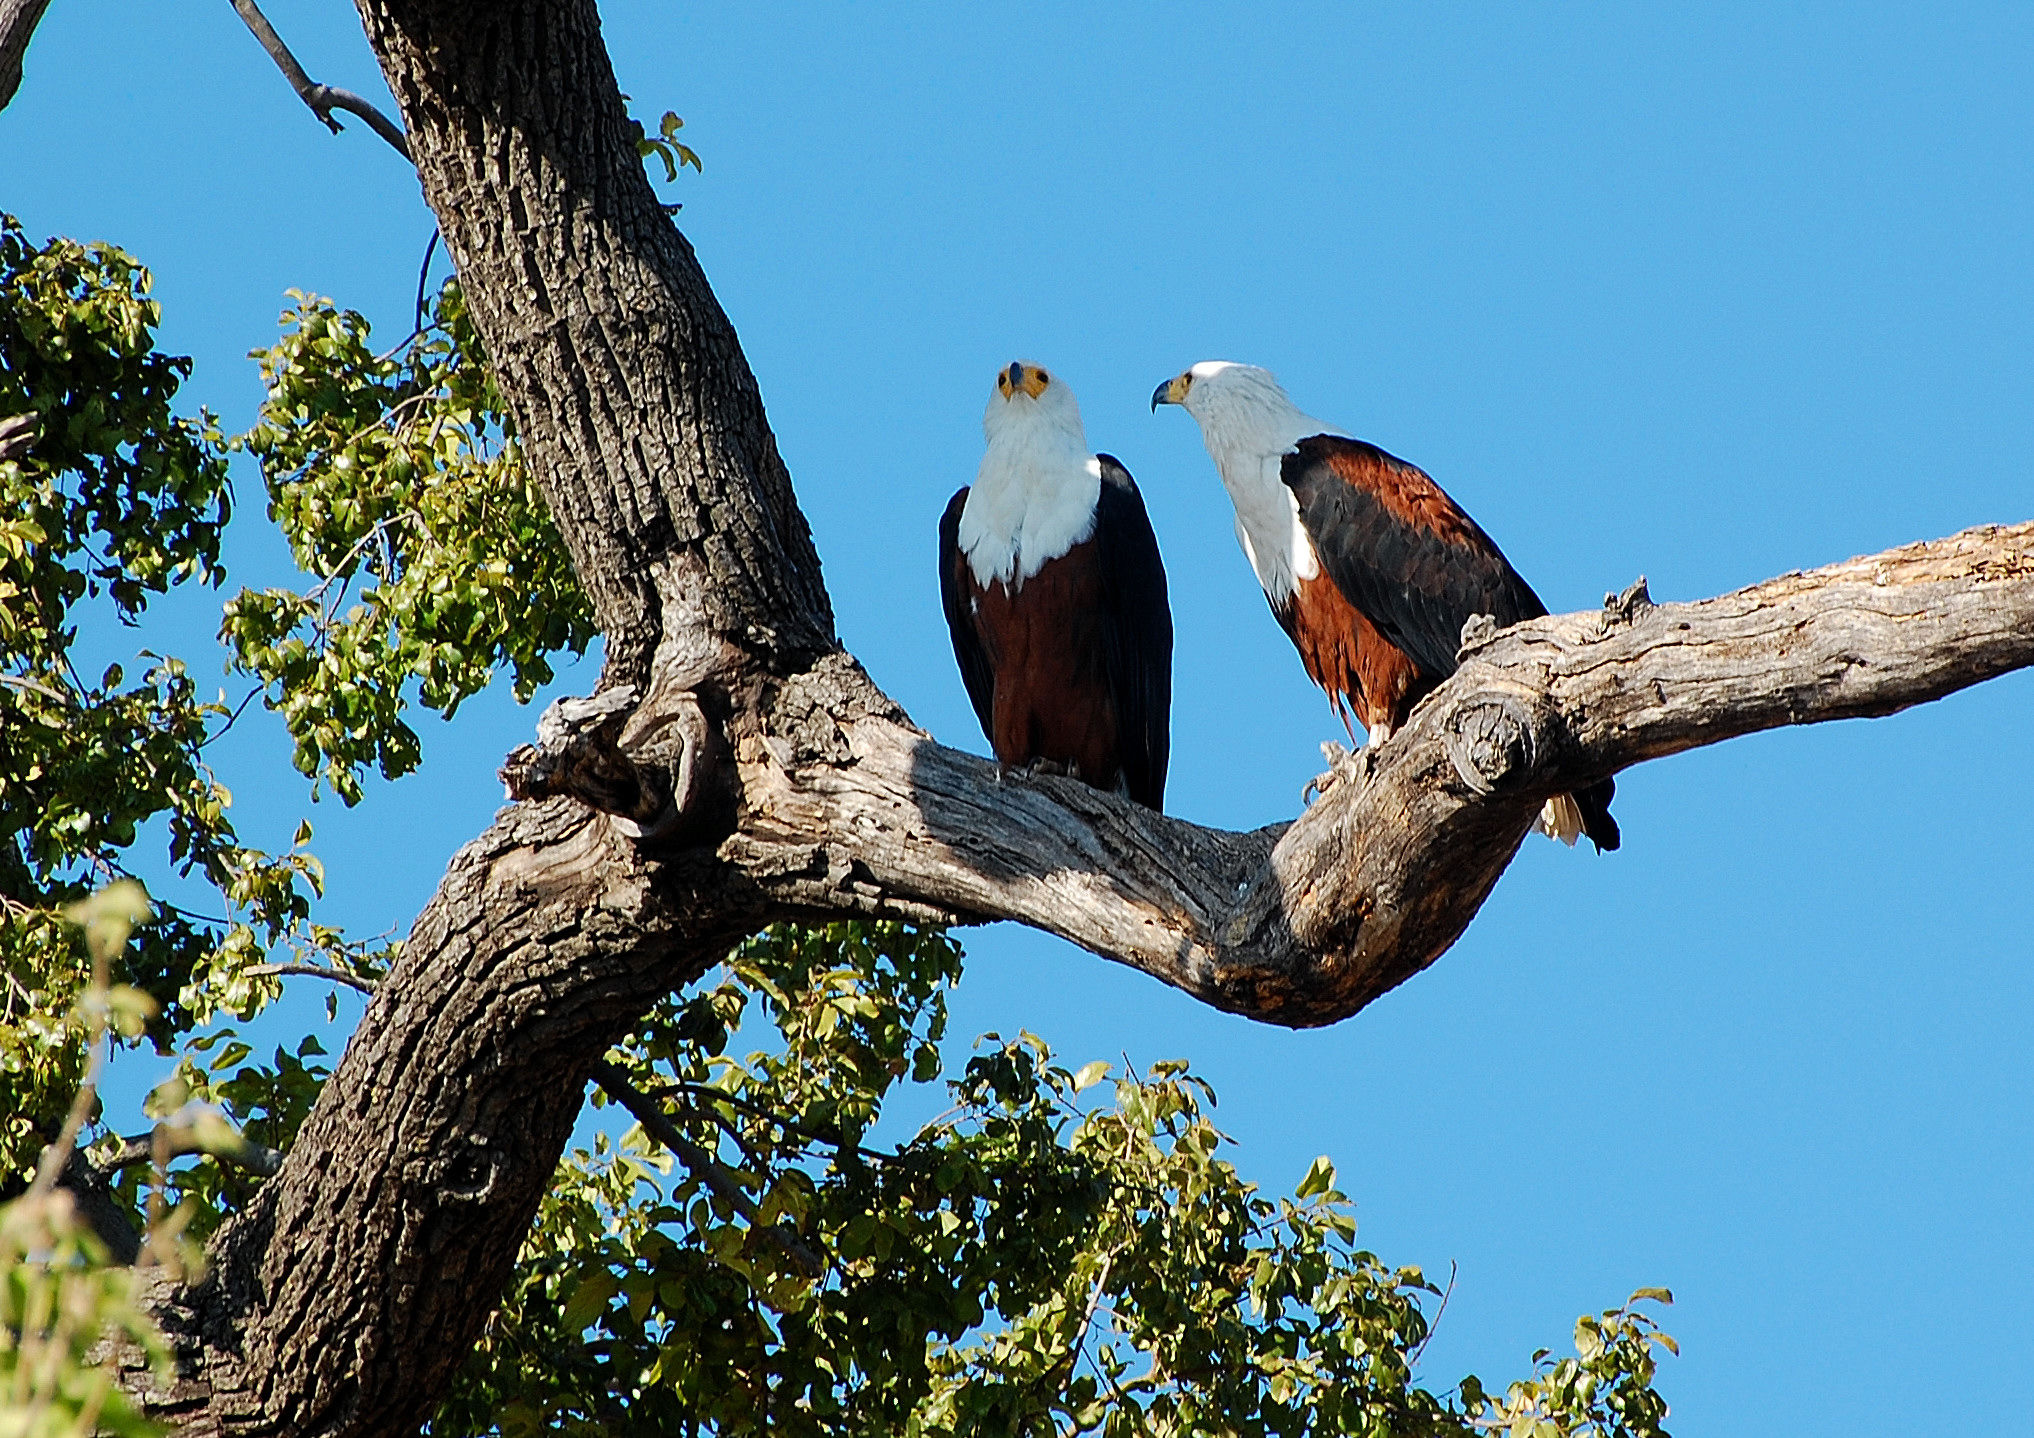 Botswana Chobe Park: He scans and she admires him...